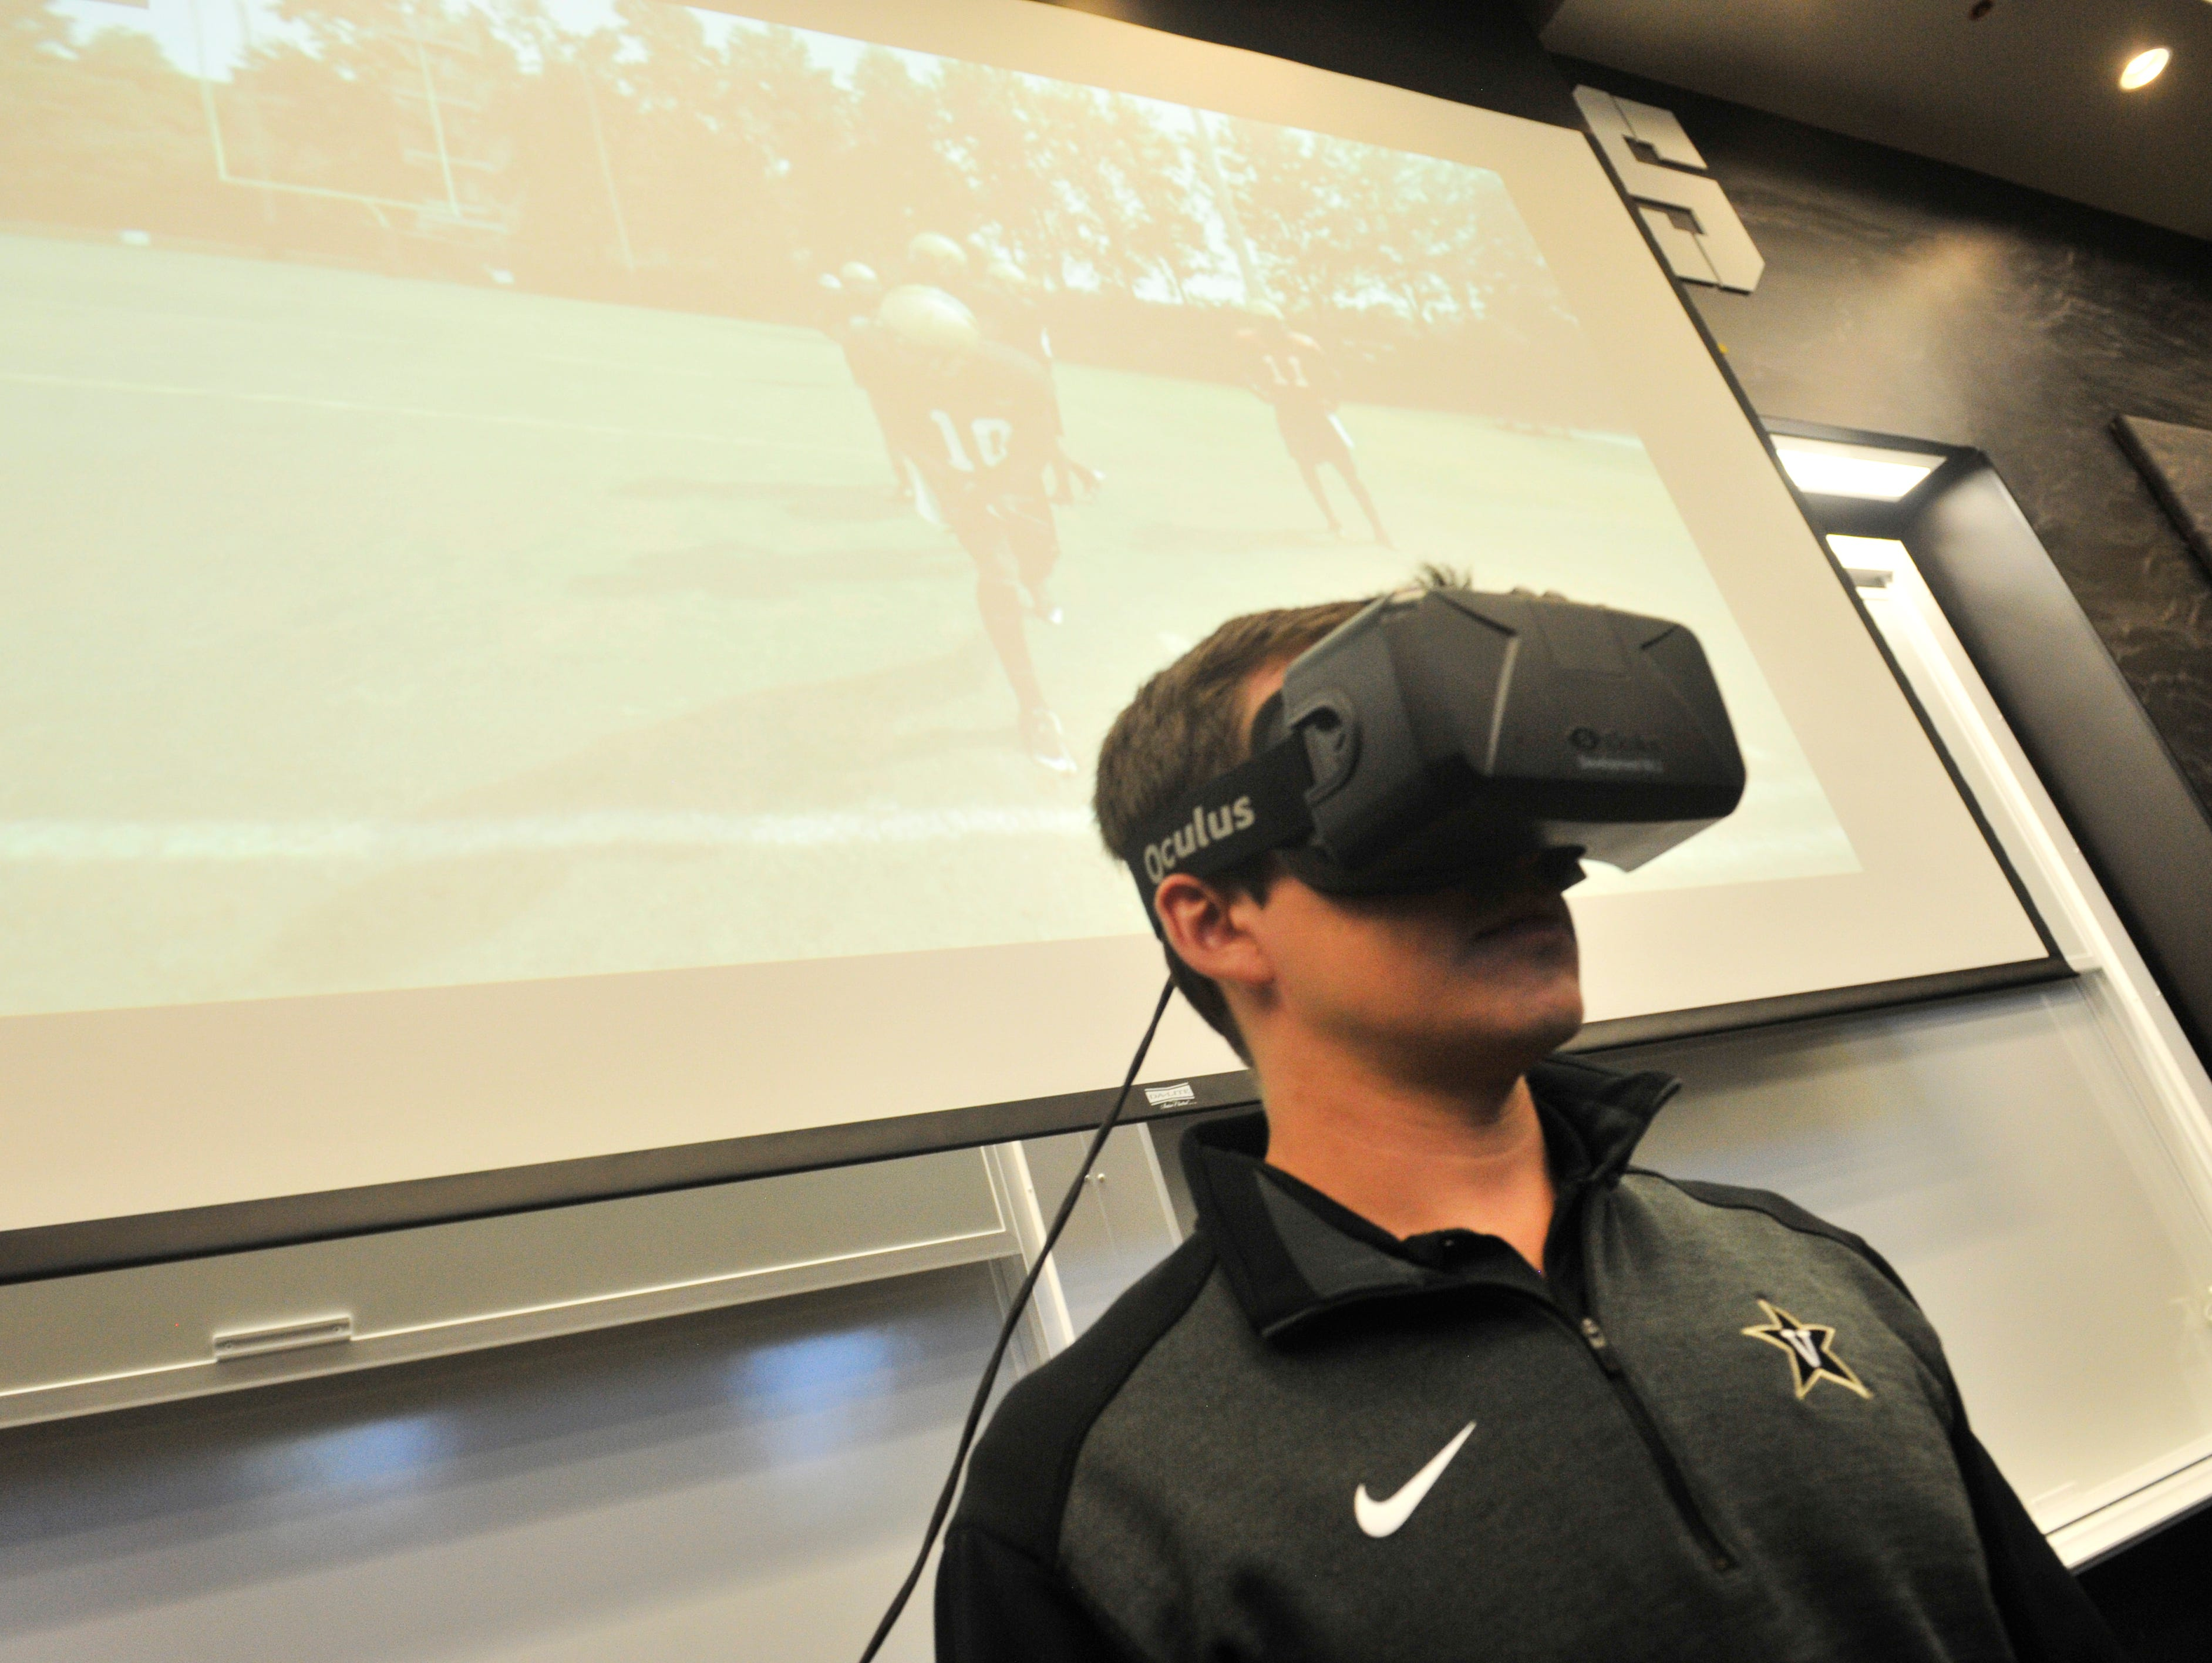 Vandy's Assistant Director of Video Productions Josh Pohl demonstrates the use of virtual reality gear in the Vanderbilt team meeting room in the McGugin Center on the Vanderbilt University campus in Nashville, August 28, 2015.